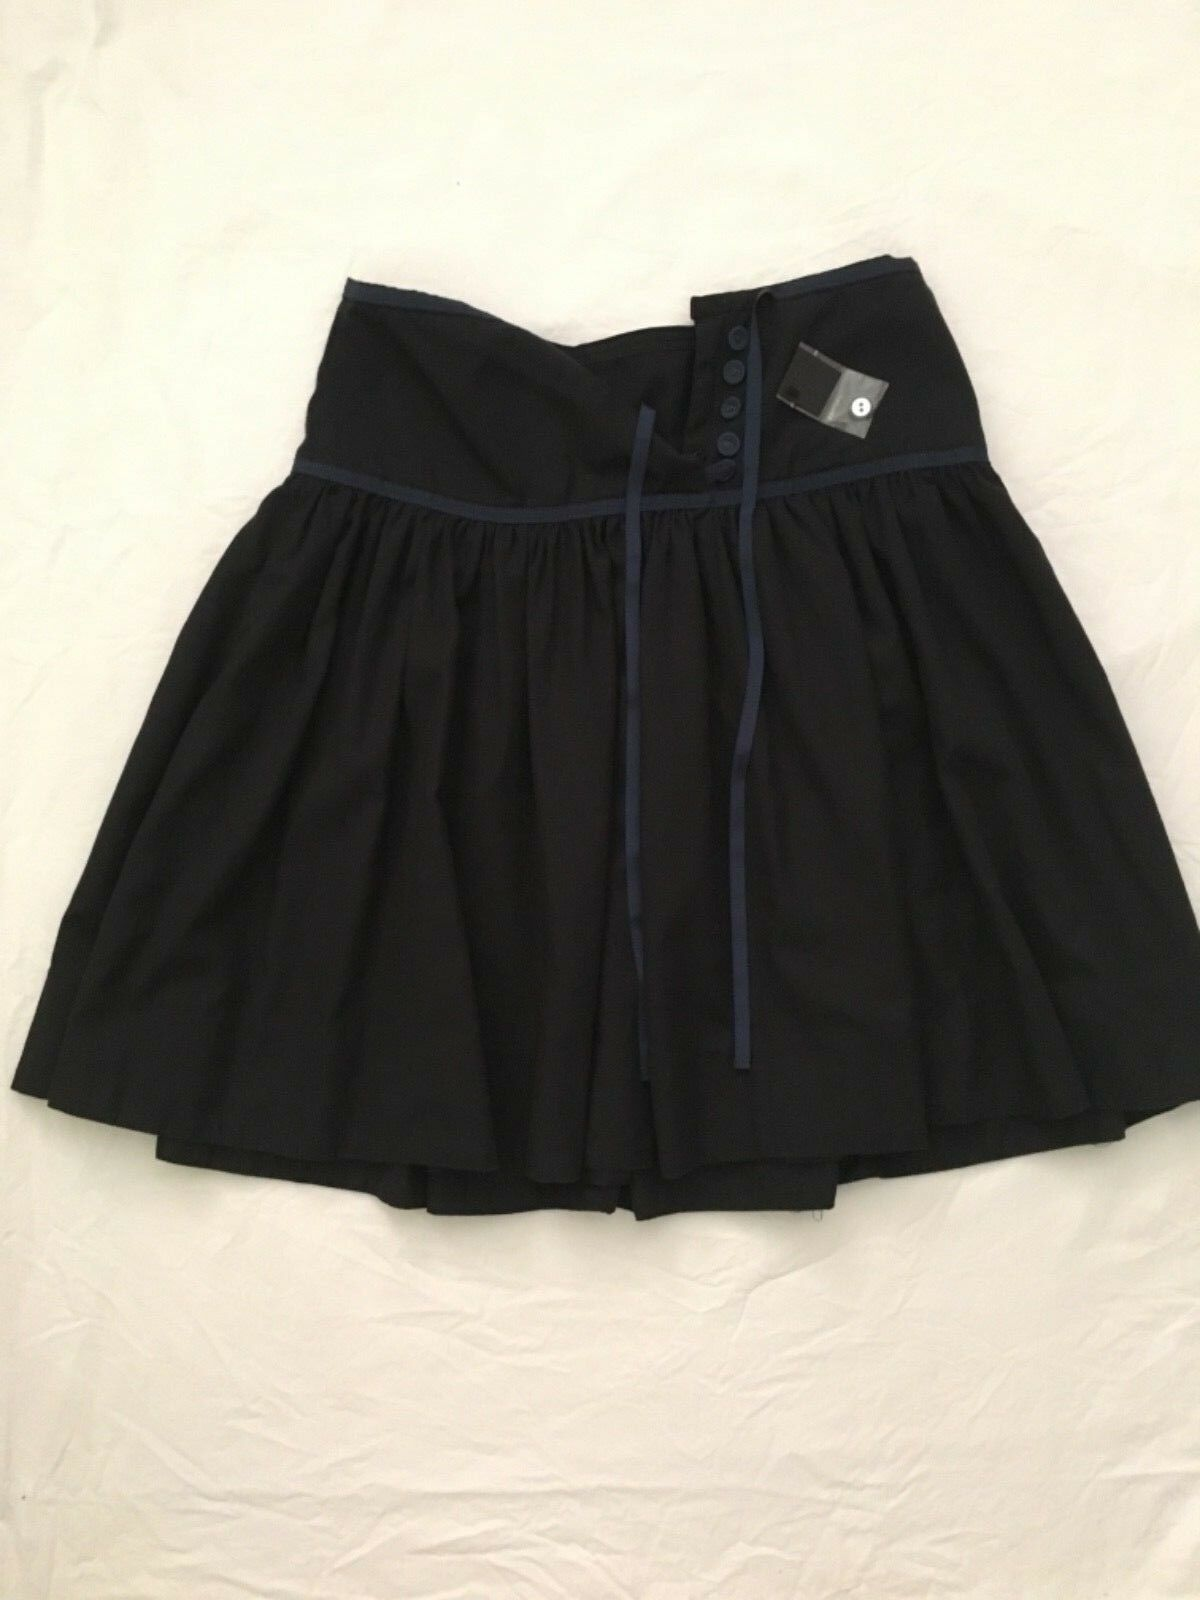 Marc Jacobs Skirt NWT  248